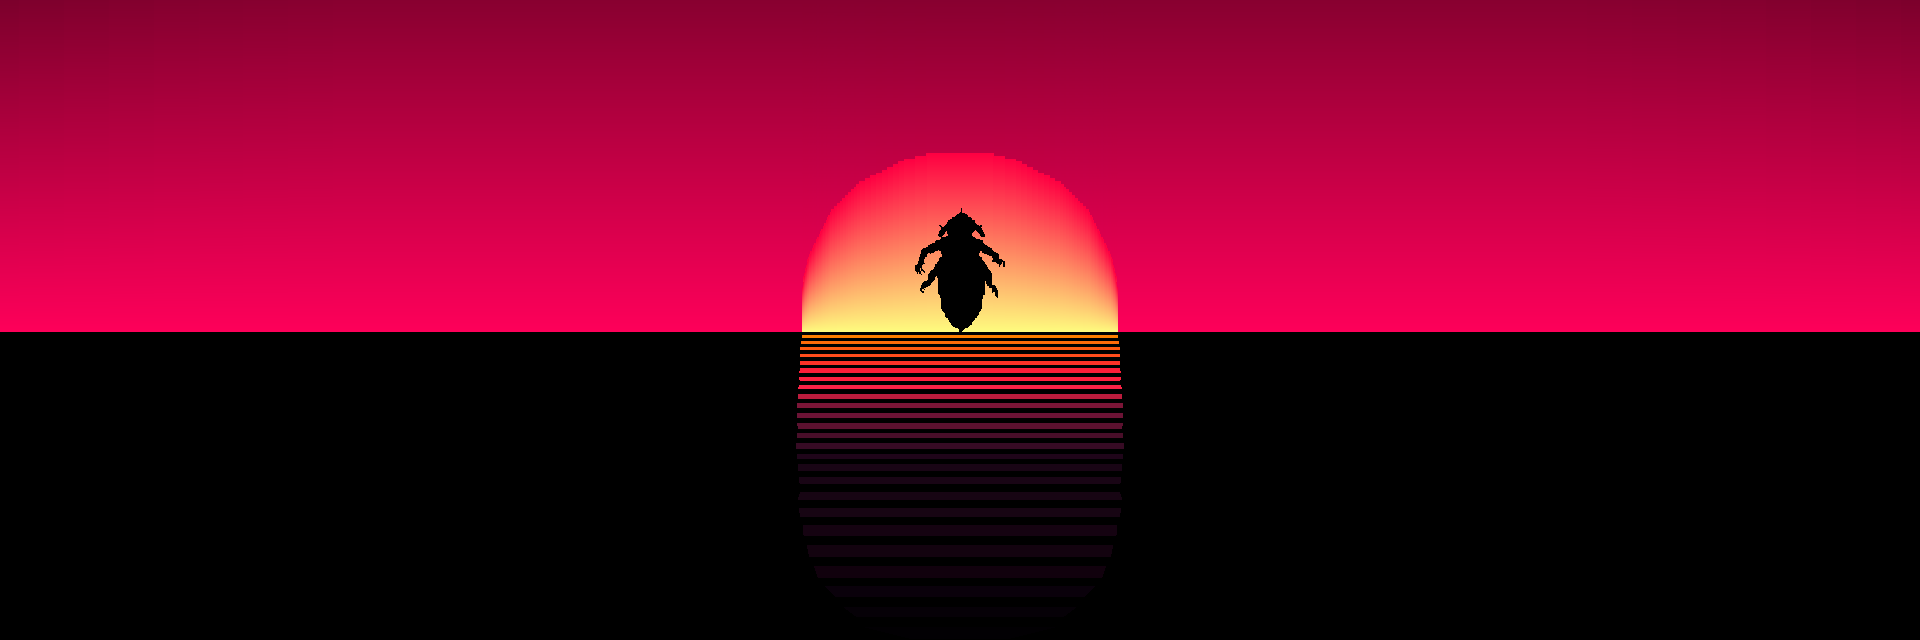 unset.png.9e7a0e965cfd624d1449423f60ce1aed.png